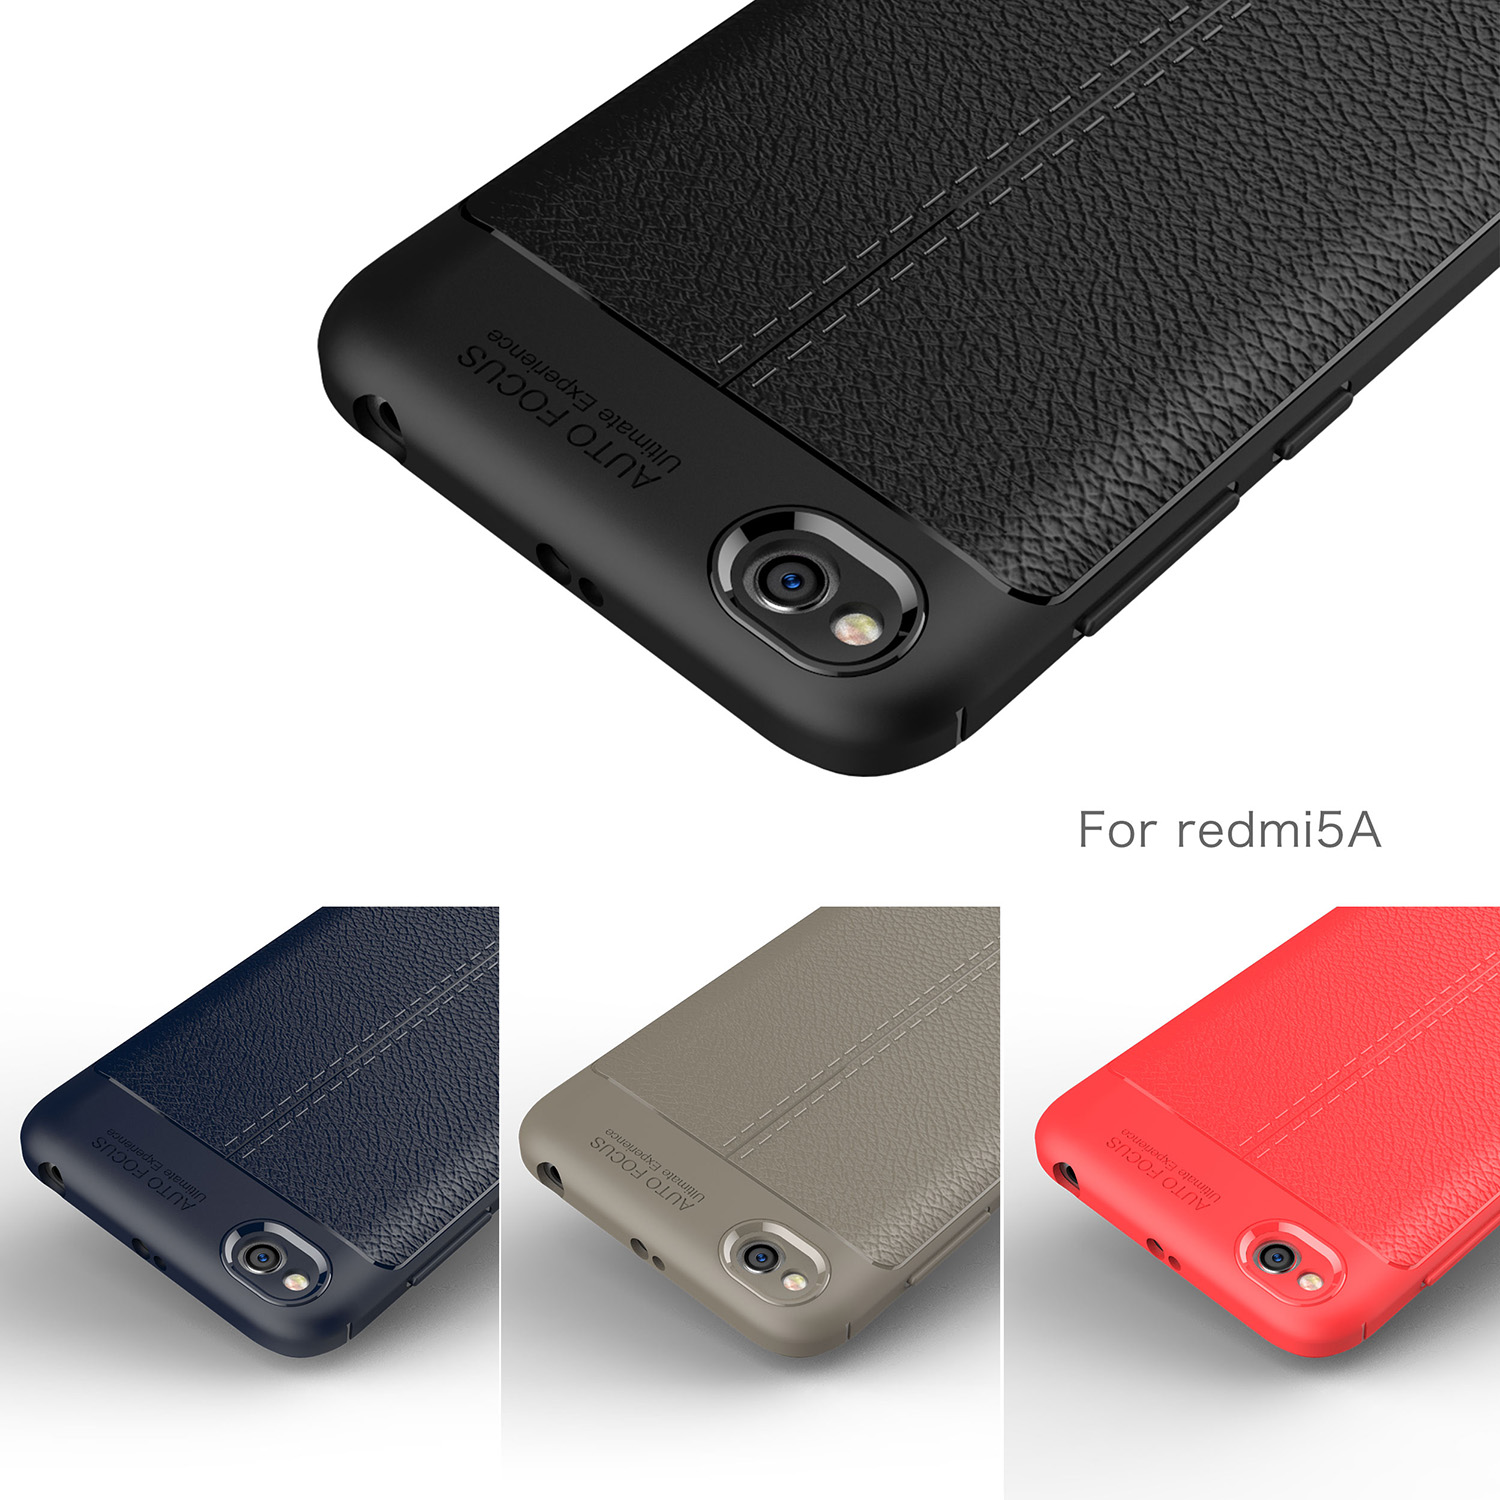 Soft Case for Xiaomi Redmi Note 5A Note5 a Mde6s Mdt6s Mde6 Plastic Back Cover for Xiaomi Redmi Note 5A TD-LTE MDT6 Phone Cases